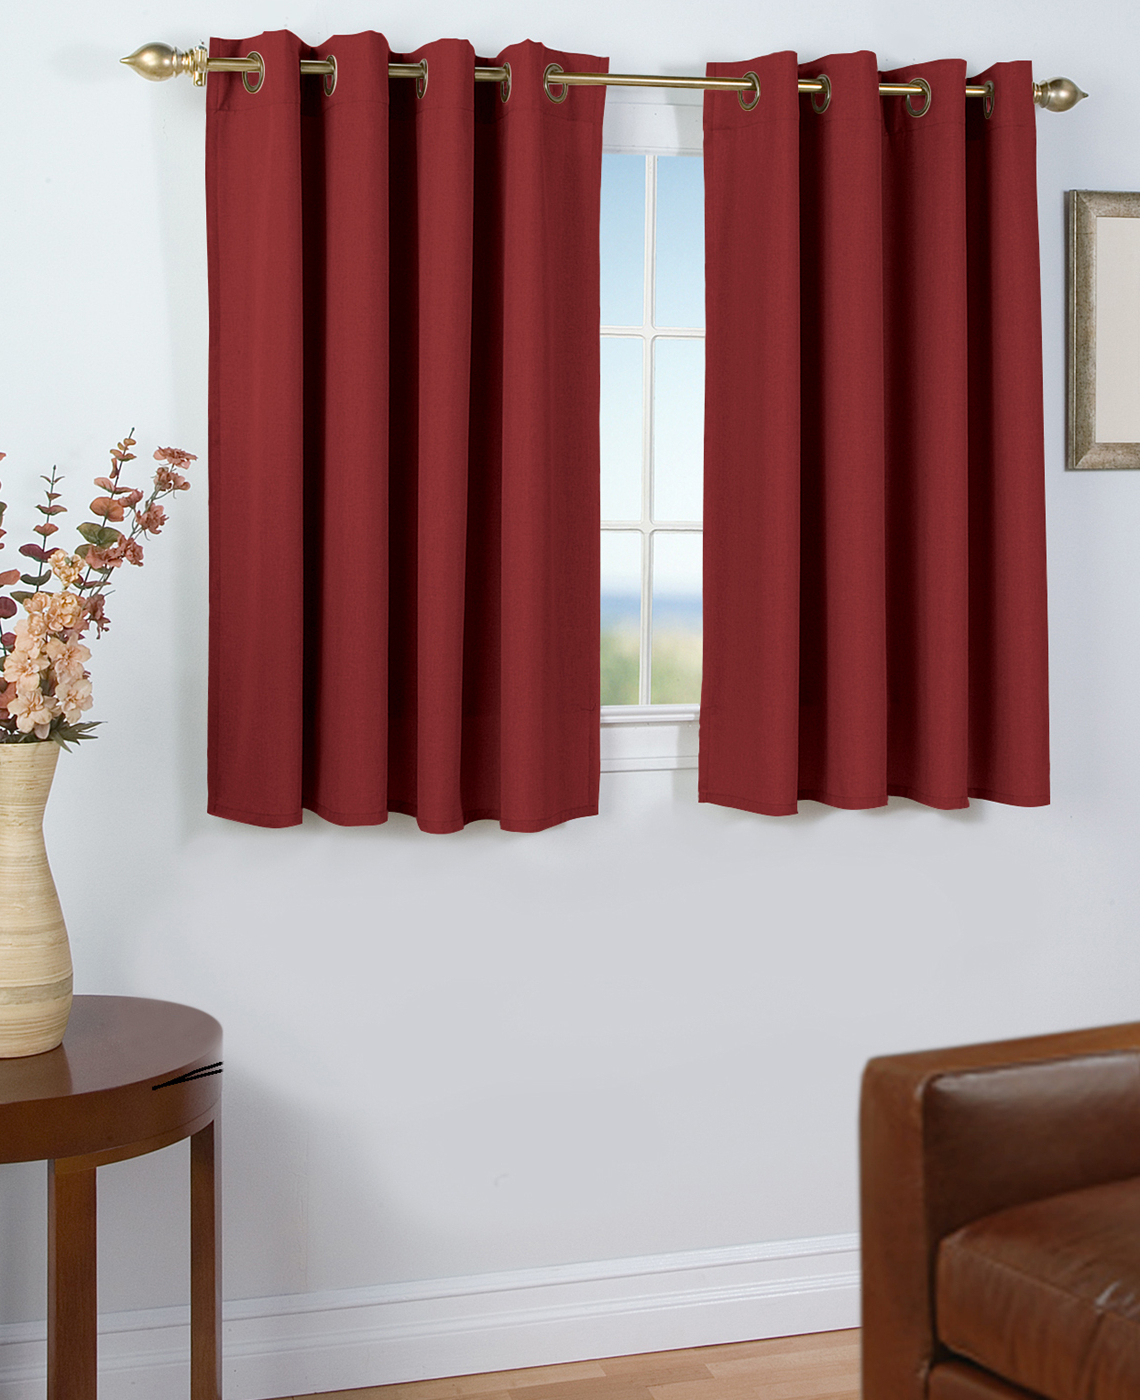 Tacoma Double Blackout Grommet Curtain Panels Intended For 2021 45 Inch Long Curtains – Thecurtainshop (View 17 of 20)